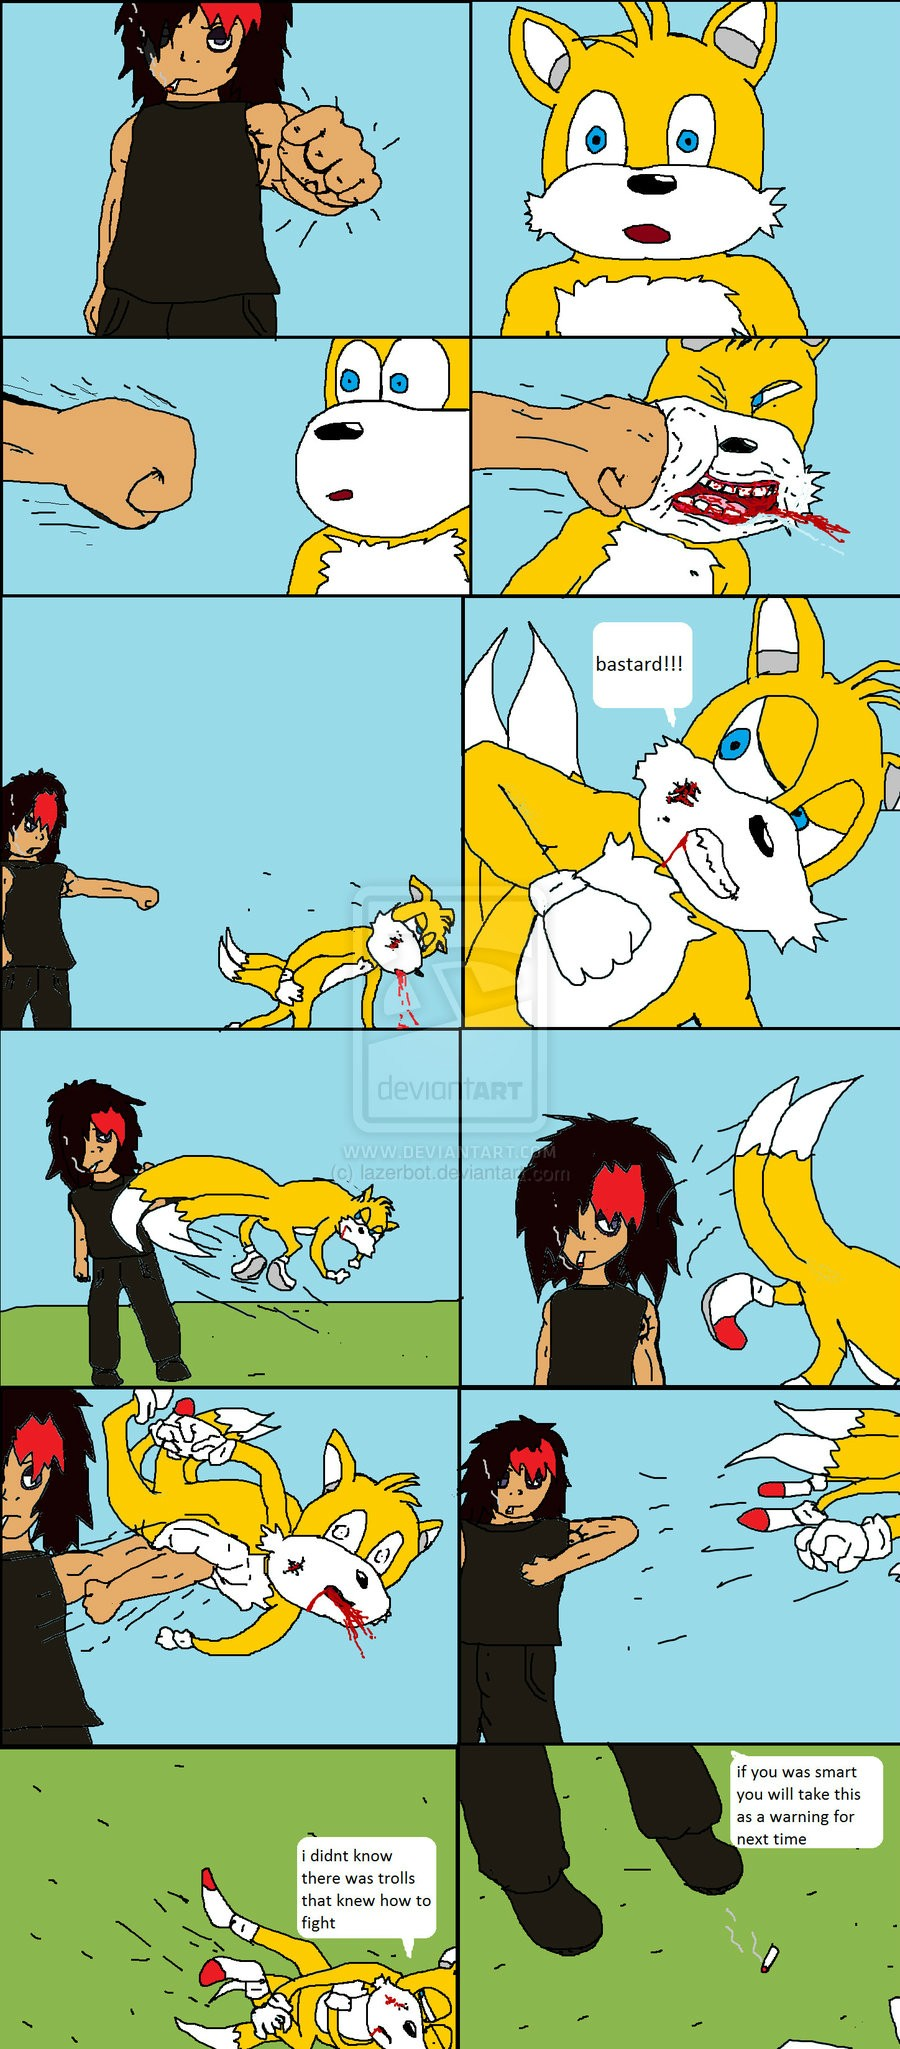 Tails gets trolled